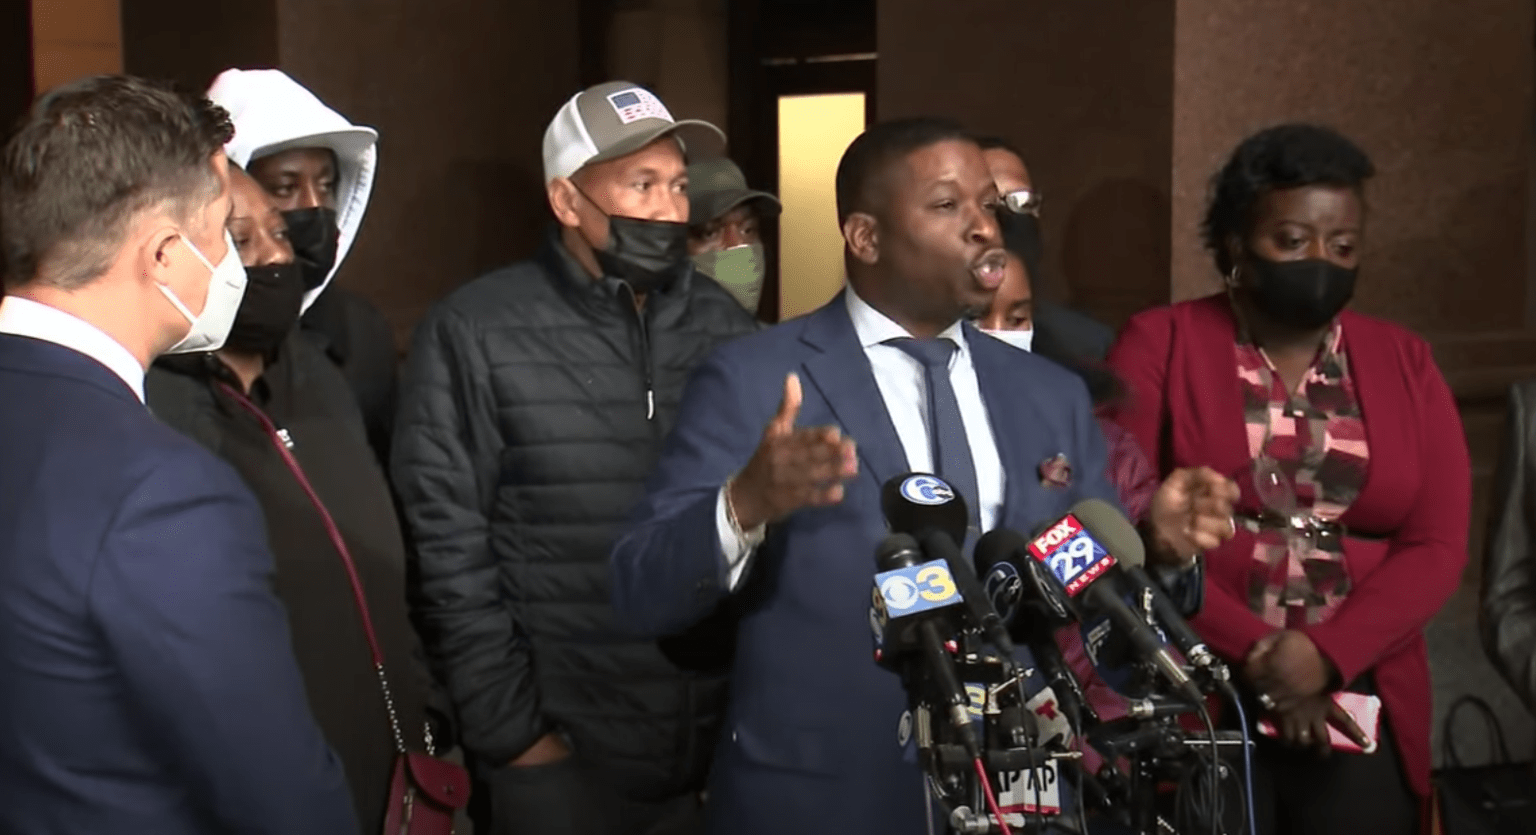 Family of Philly man shot and killed says officers involved in fatal shooting shouldn't be charged with murder